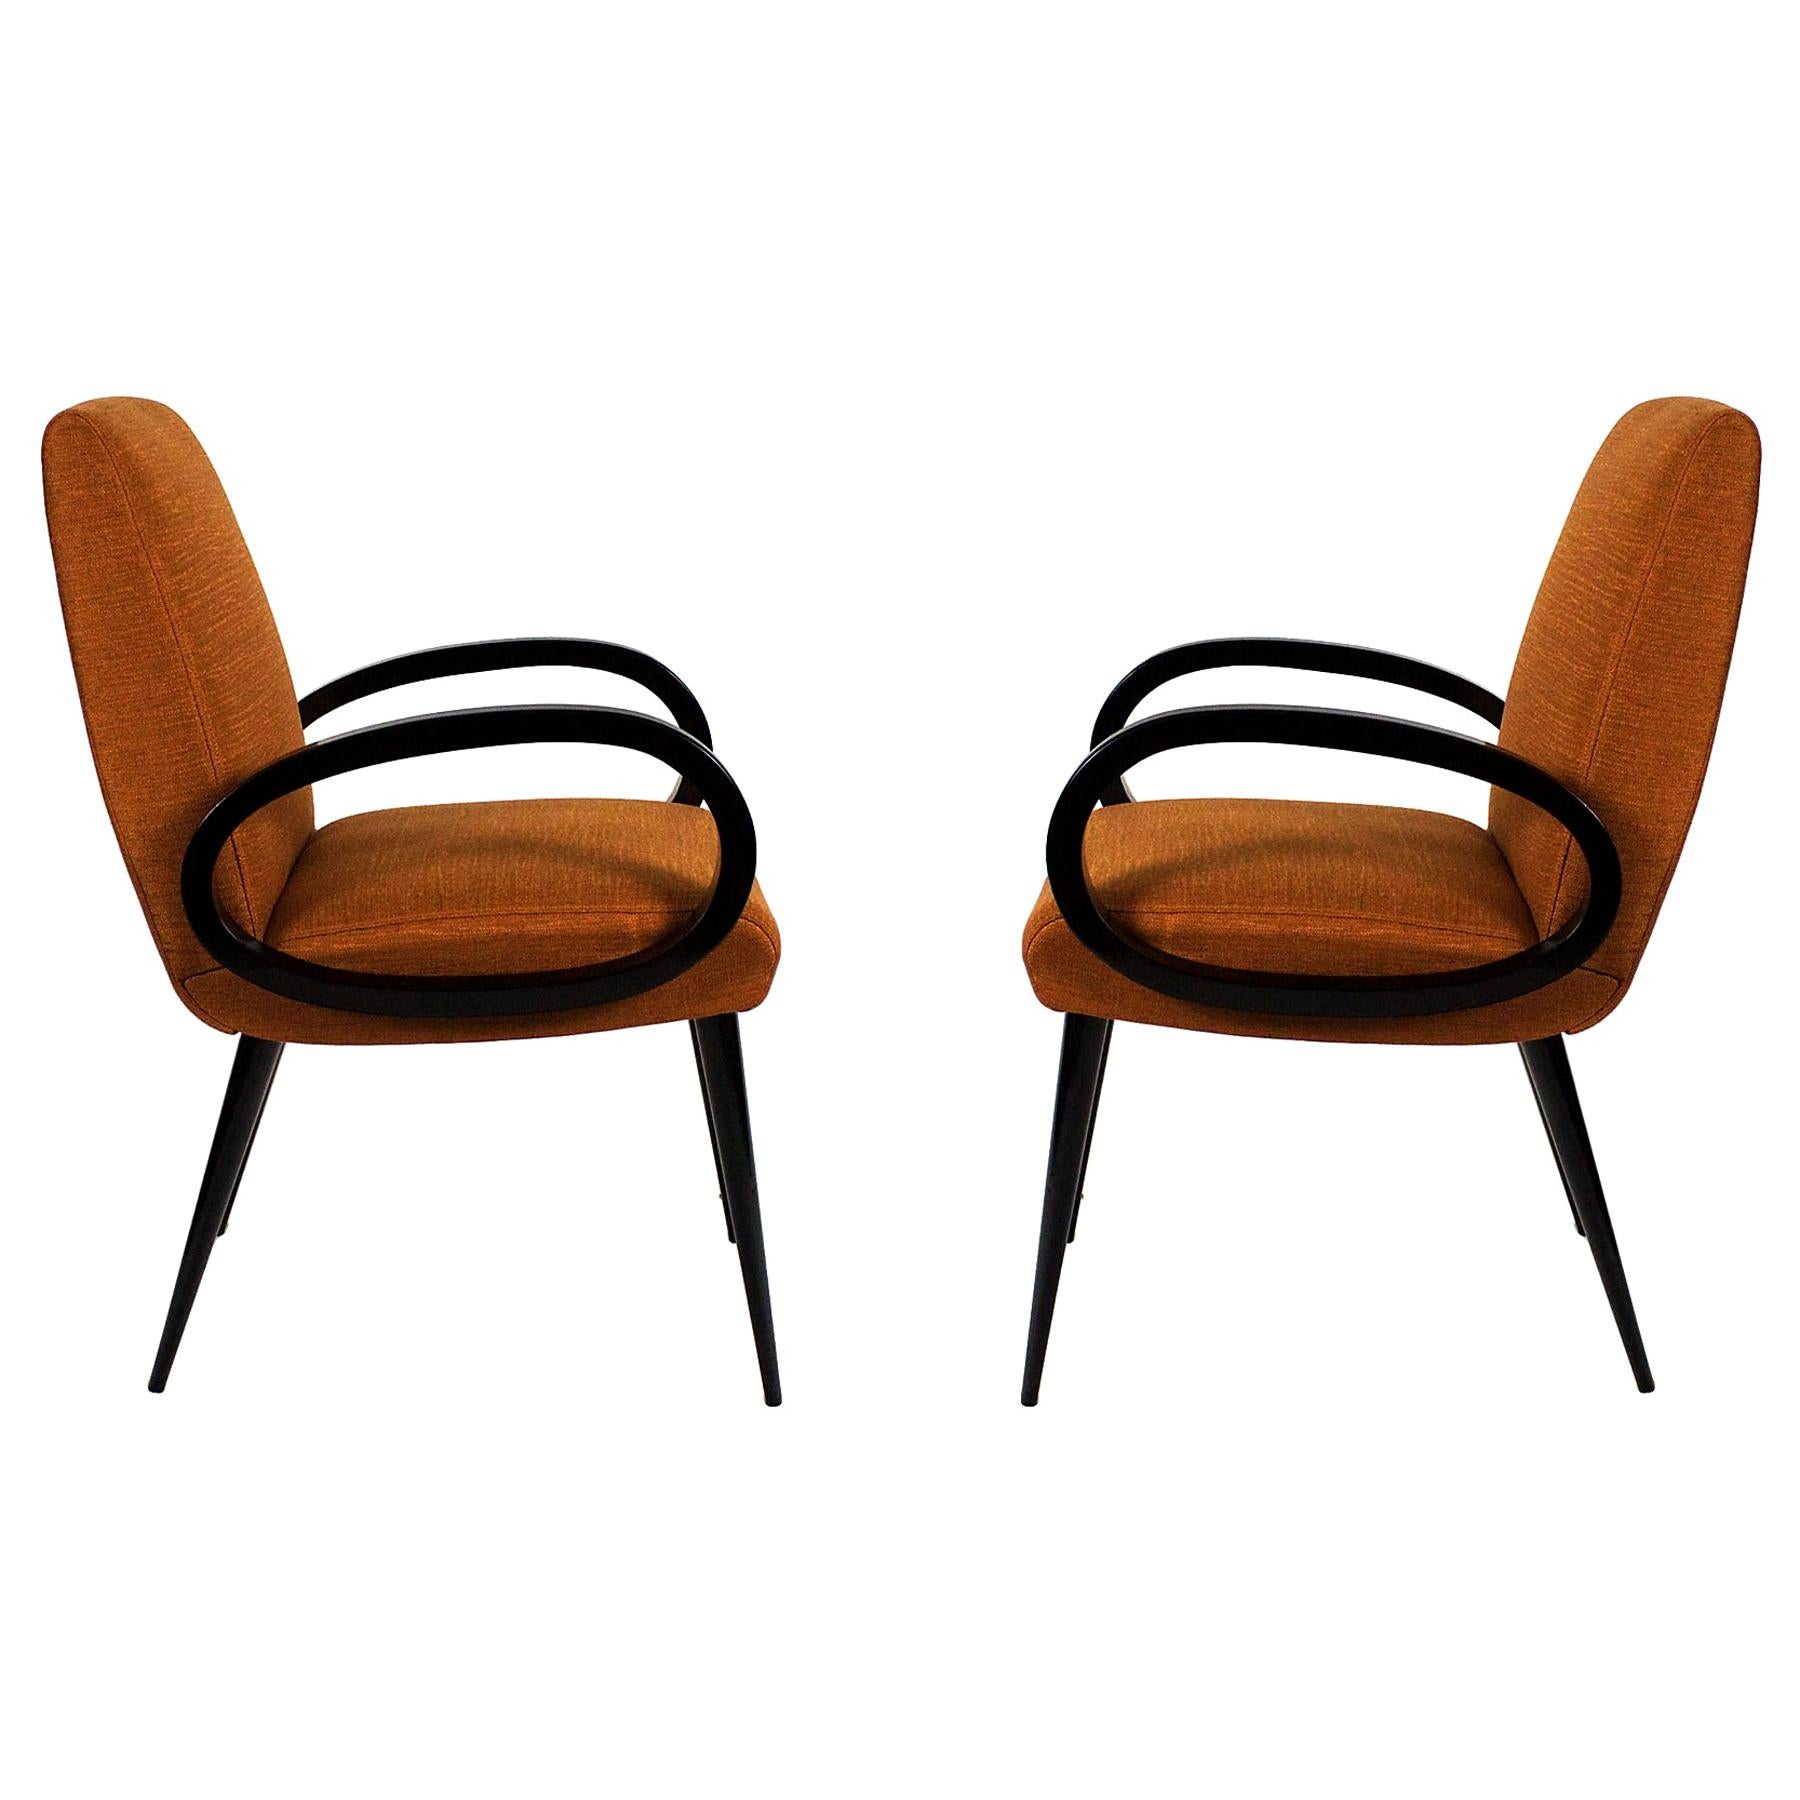 1950s Pair of Bridge Armchairs, Oval Arms, Stained Beech, Fibreguard, France